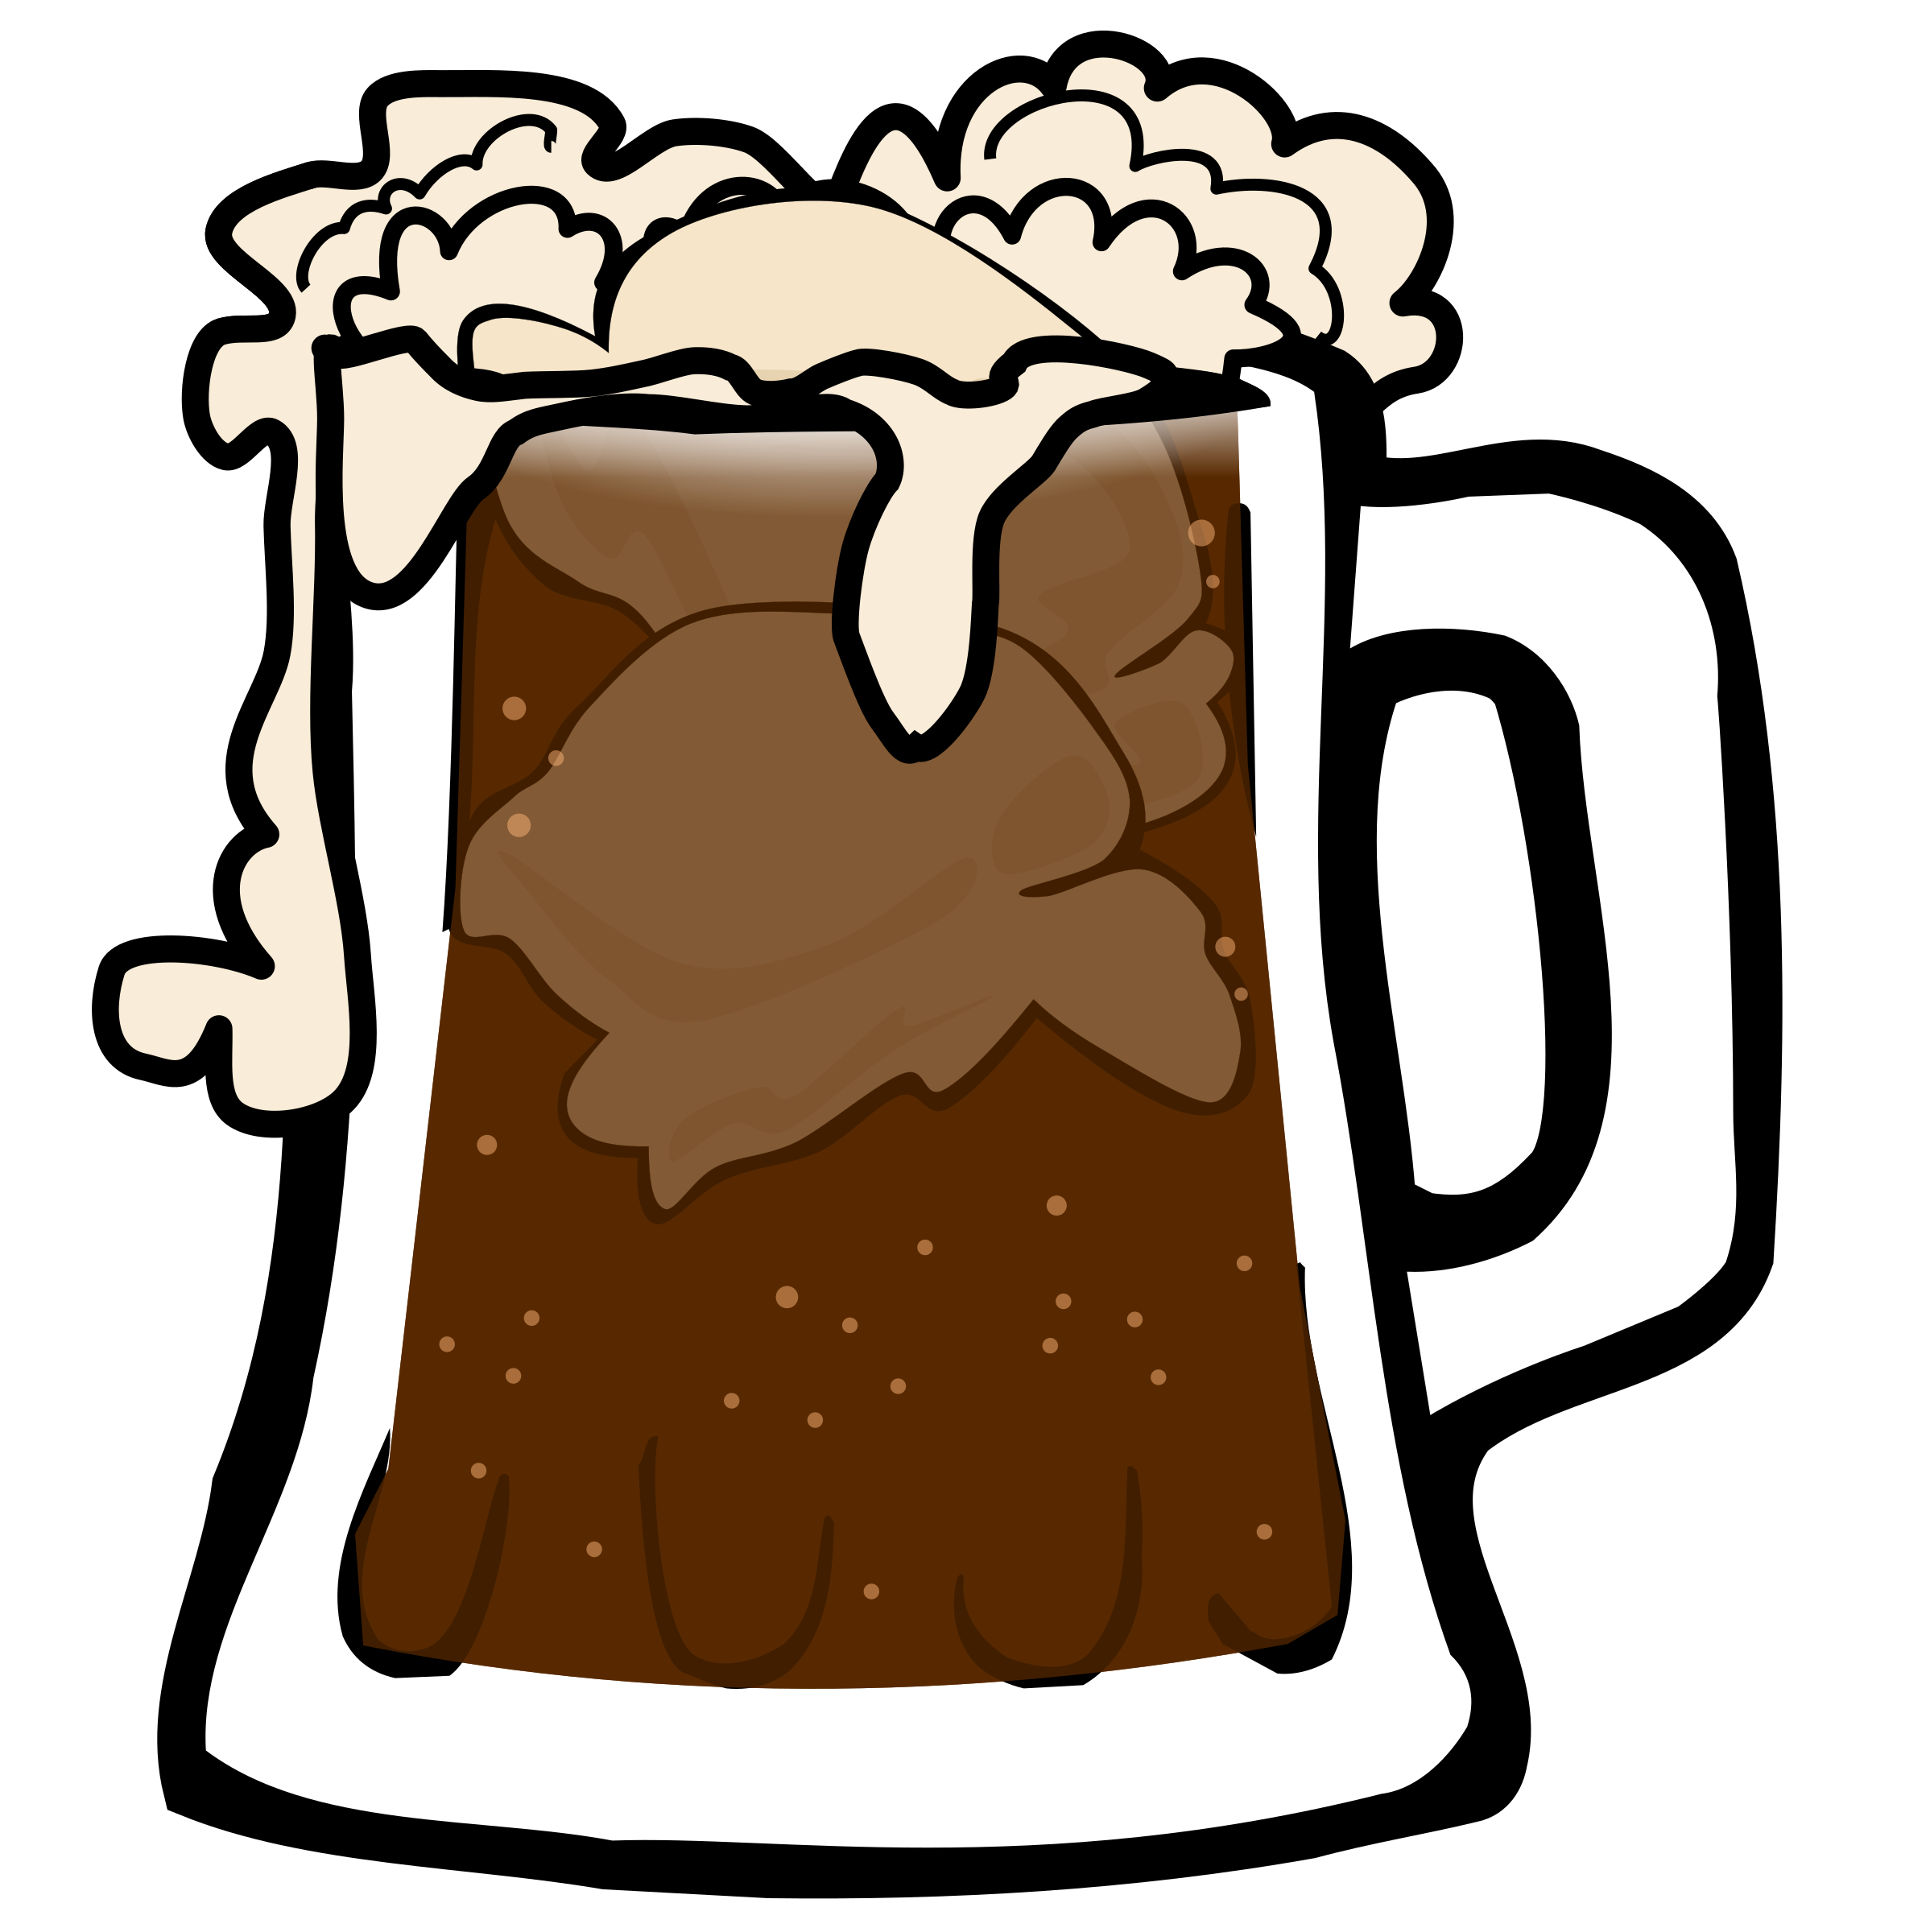 Root Beer Float - Root Beer Float Clip Art